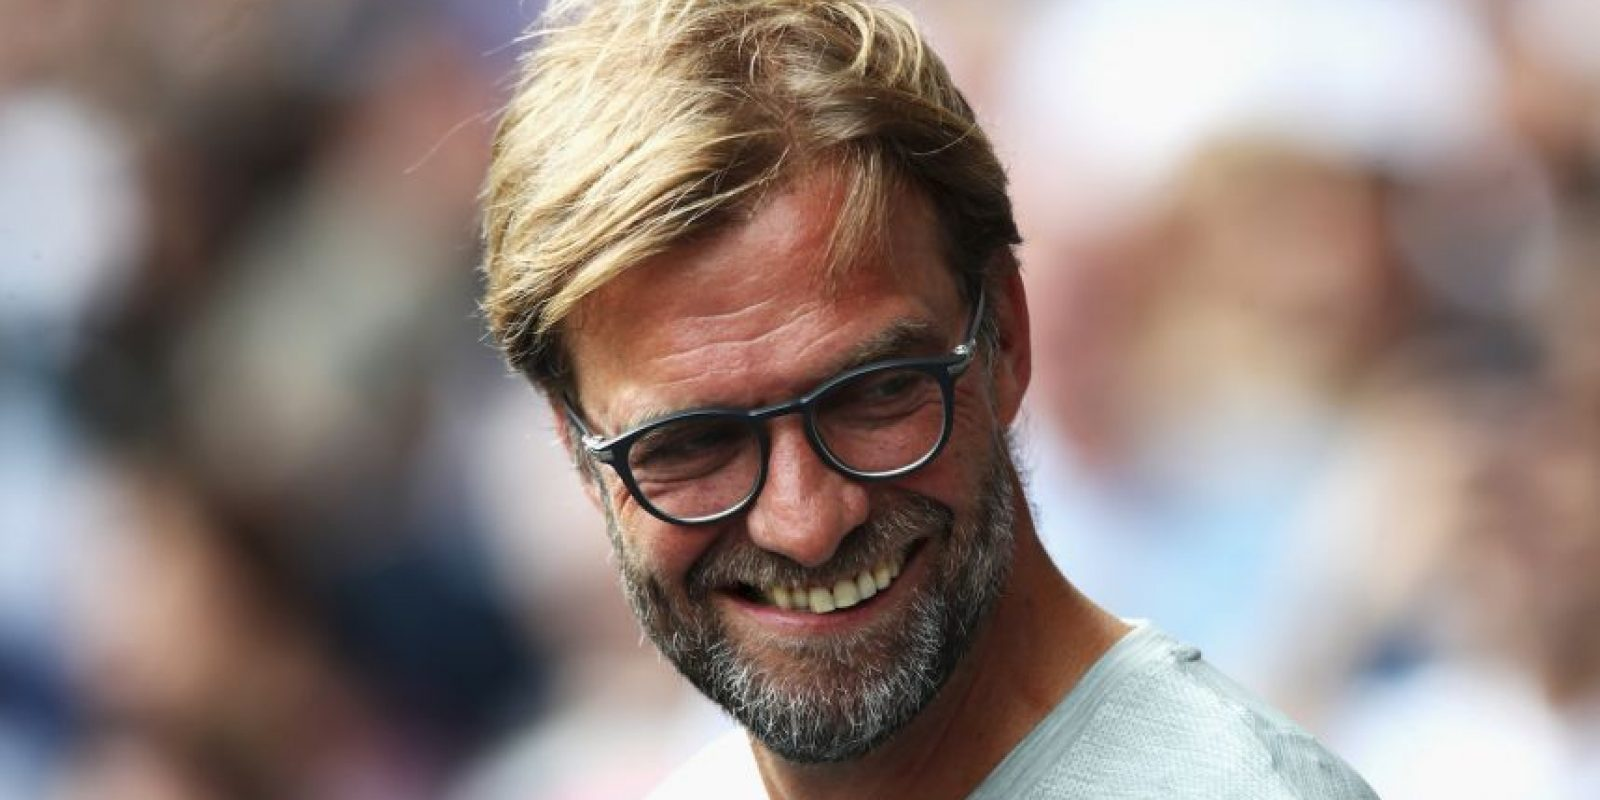 Fue despreciado por Jürgen Klopp Foto: Getty Images